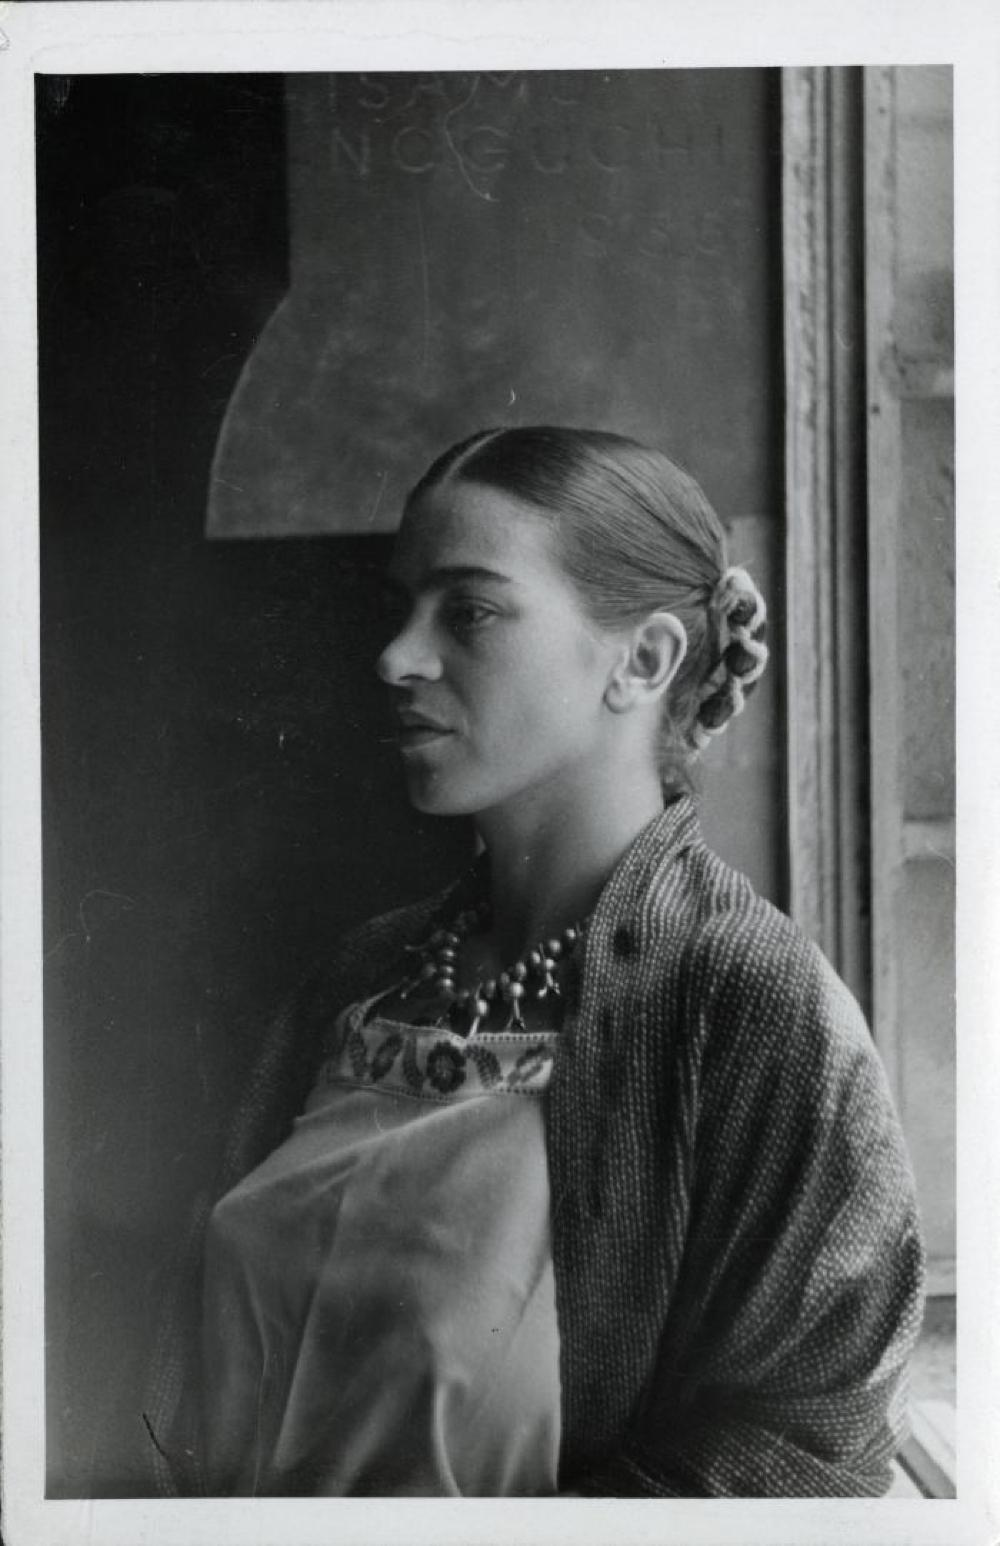 Portrait of Frida Kahlo at Noguchi's mural, History Mexico, in Mexico City